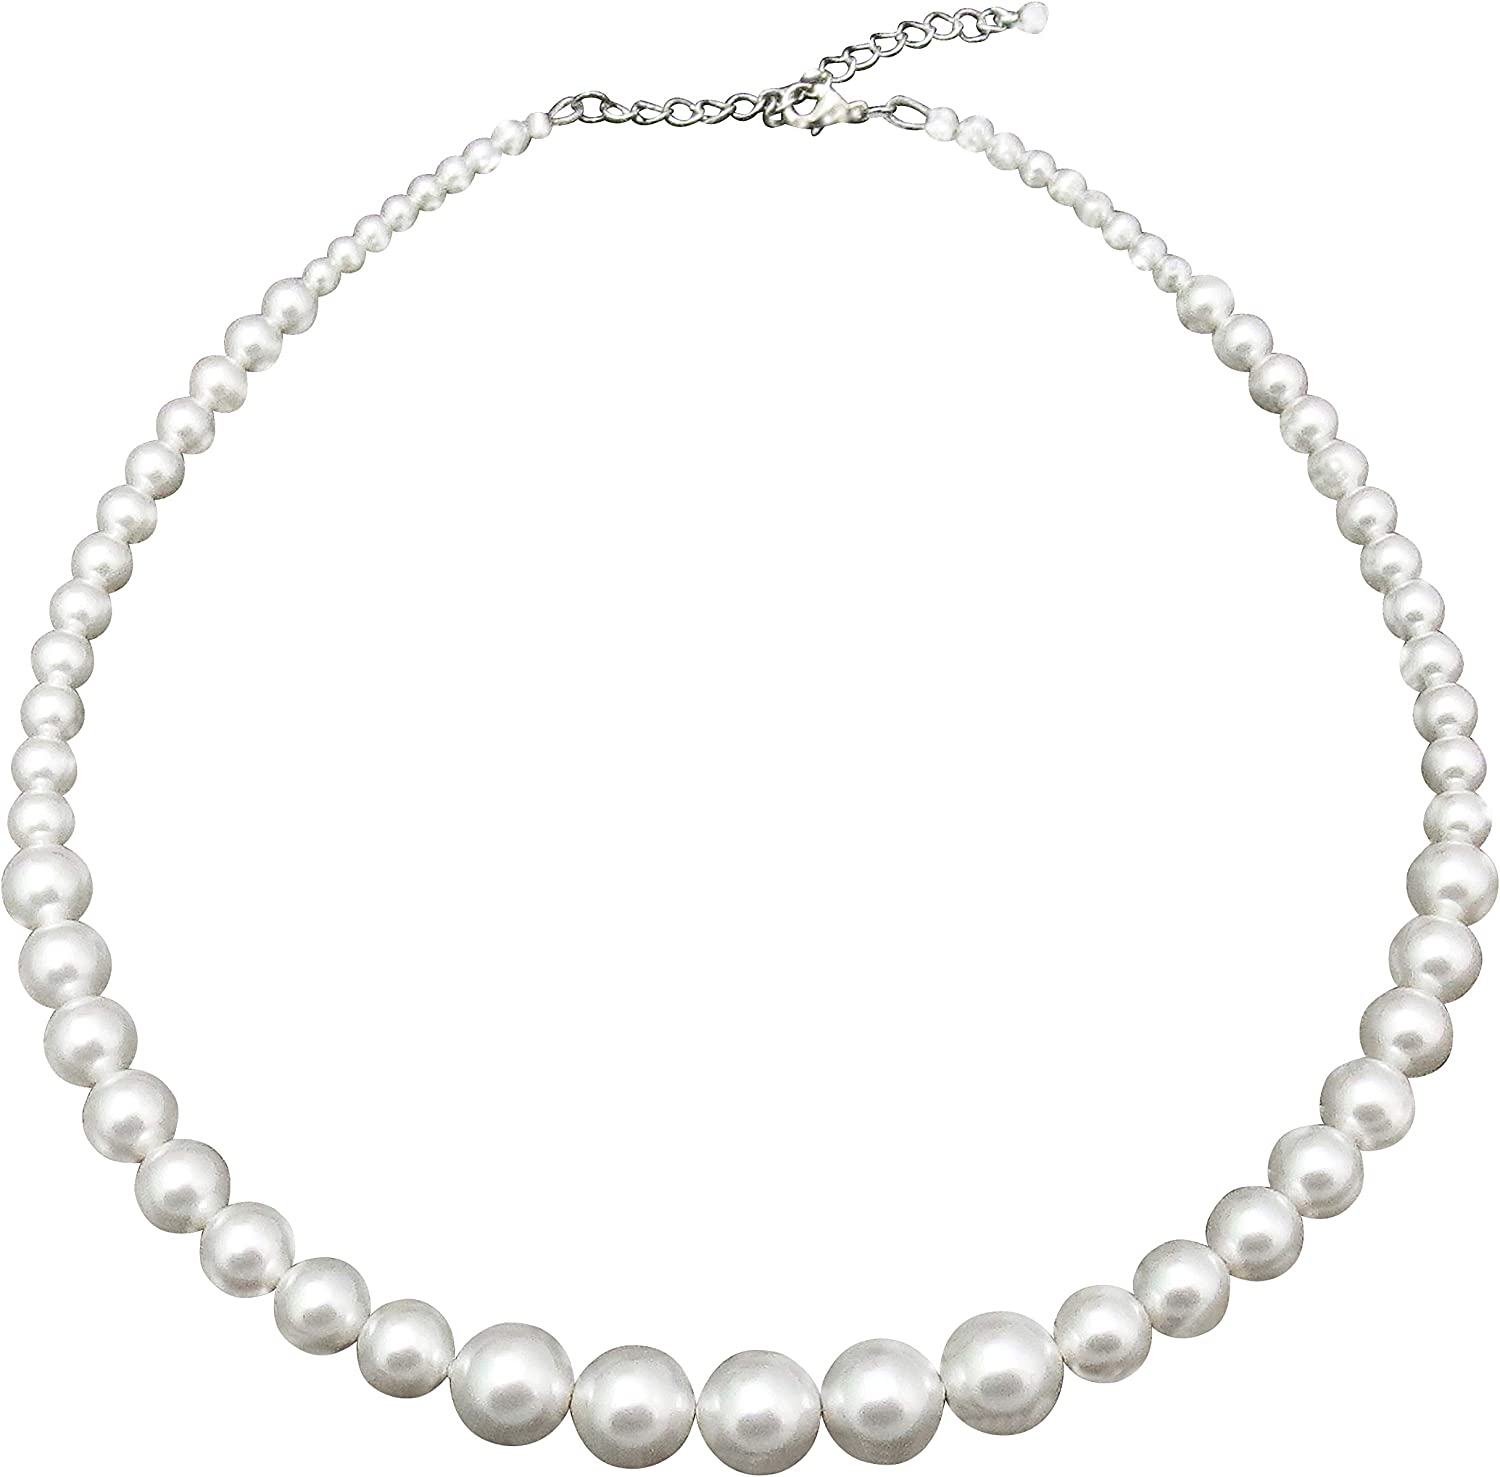 Trimic Graduated Pearl Strand Necklace, White Swarovski Simulated Pearls, Gradual 3mm-10mm Round Pearl Jewelry for Women